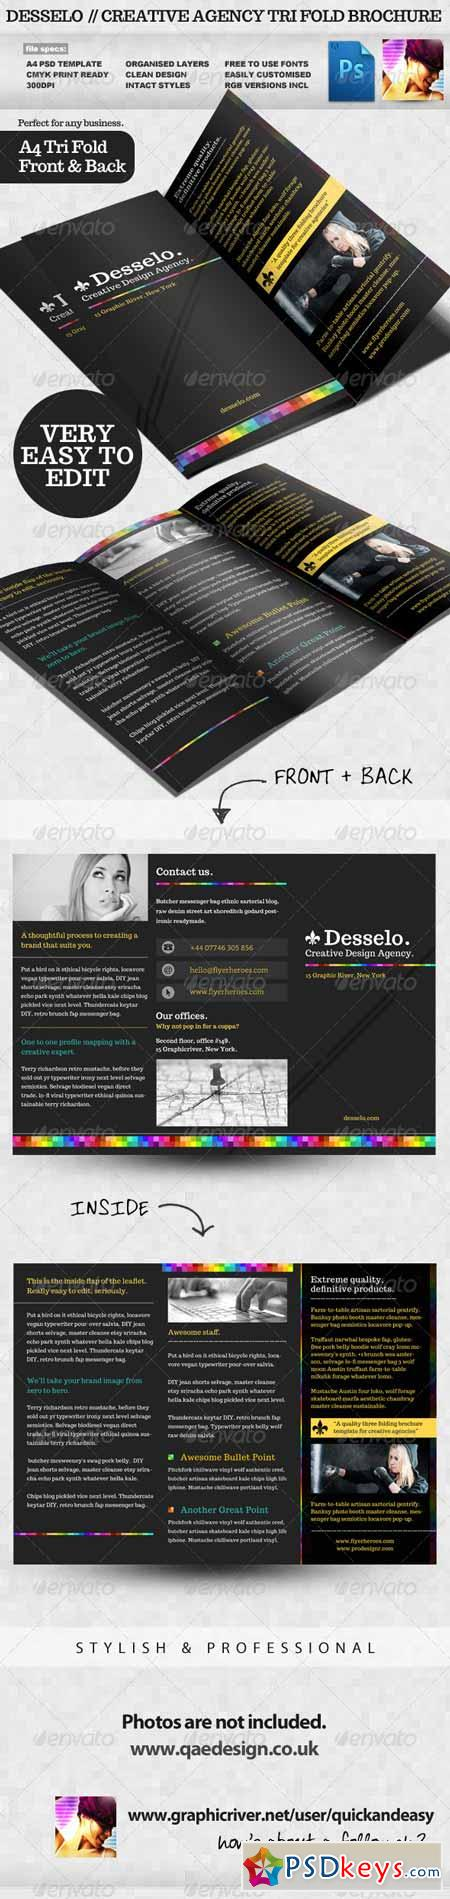 creative brochure templates free download - desselo creative tri fold brochure template 2310985